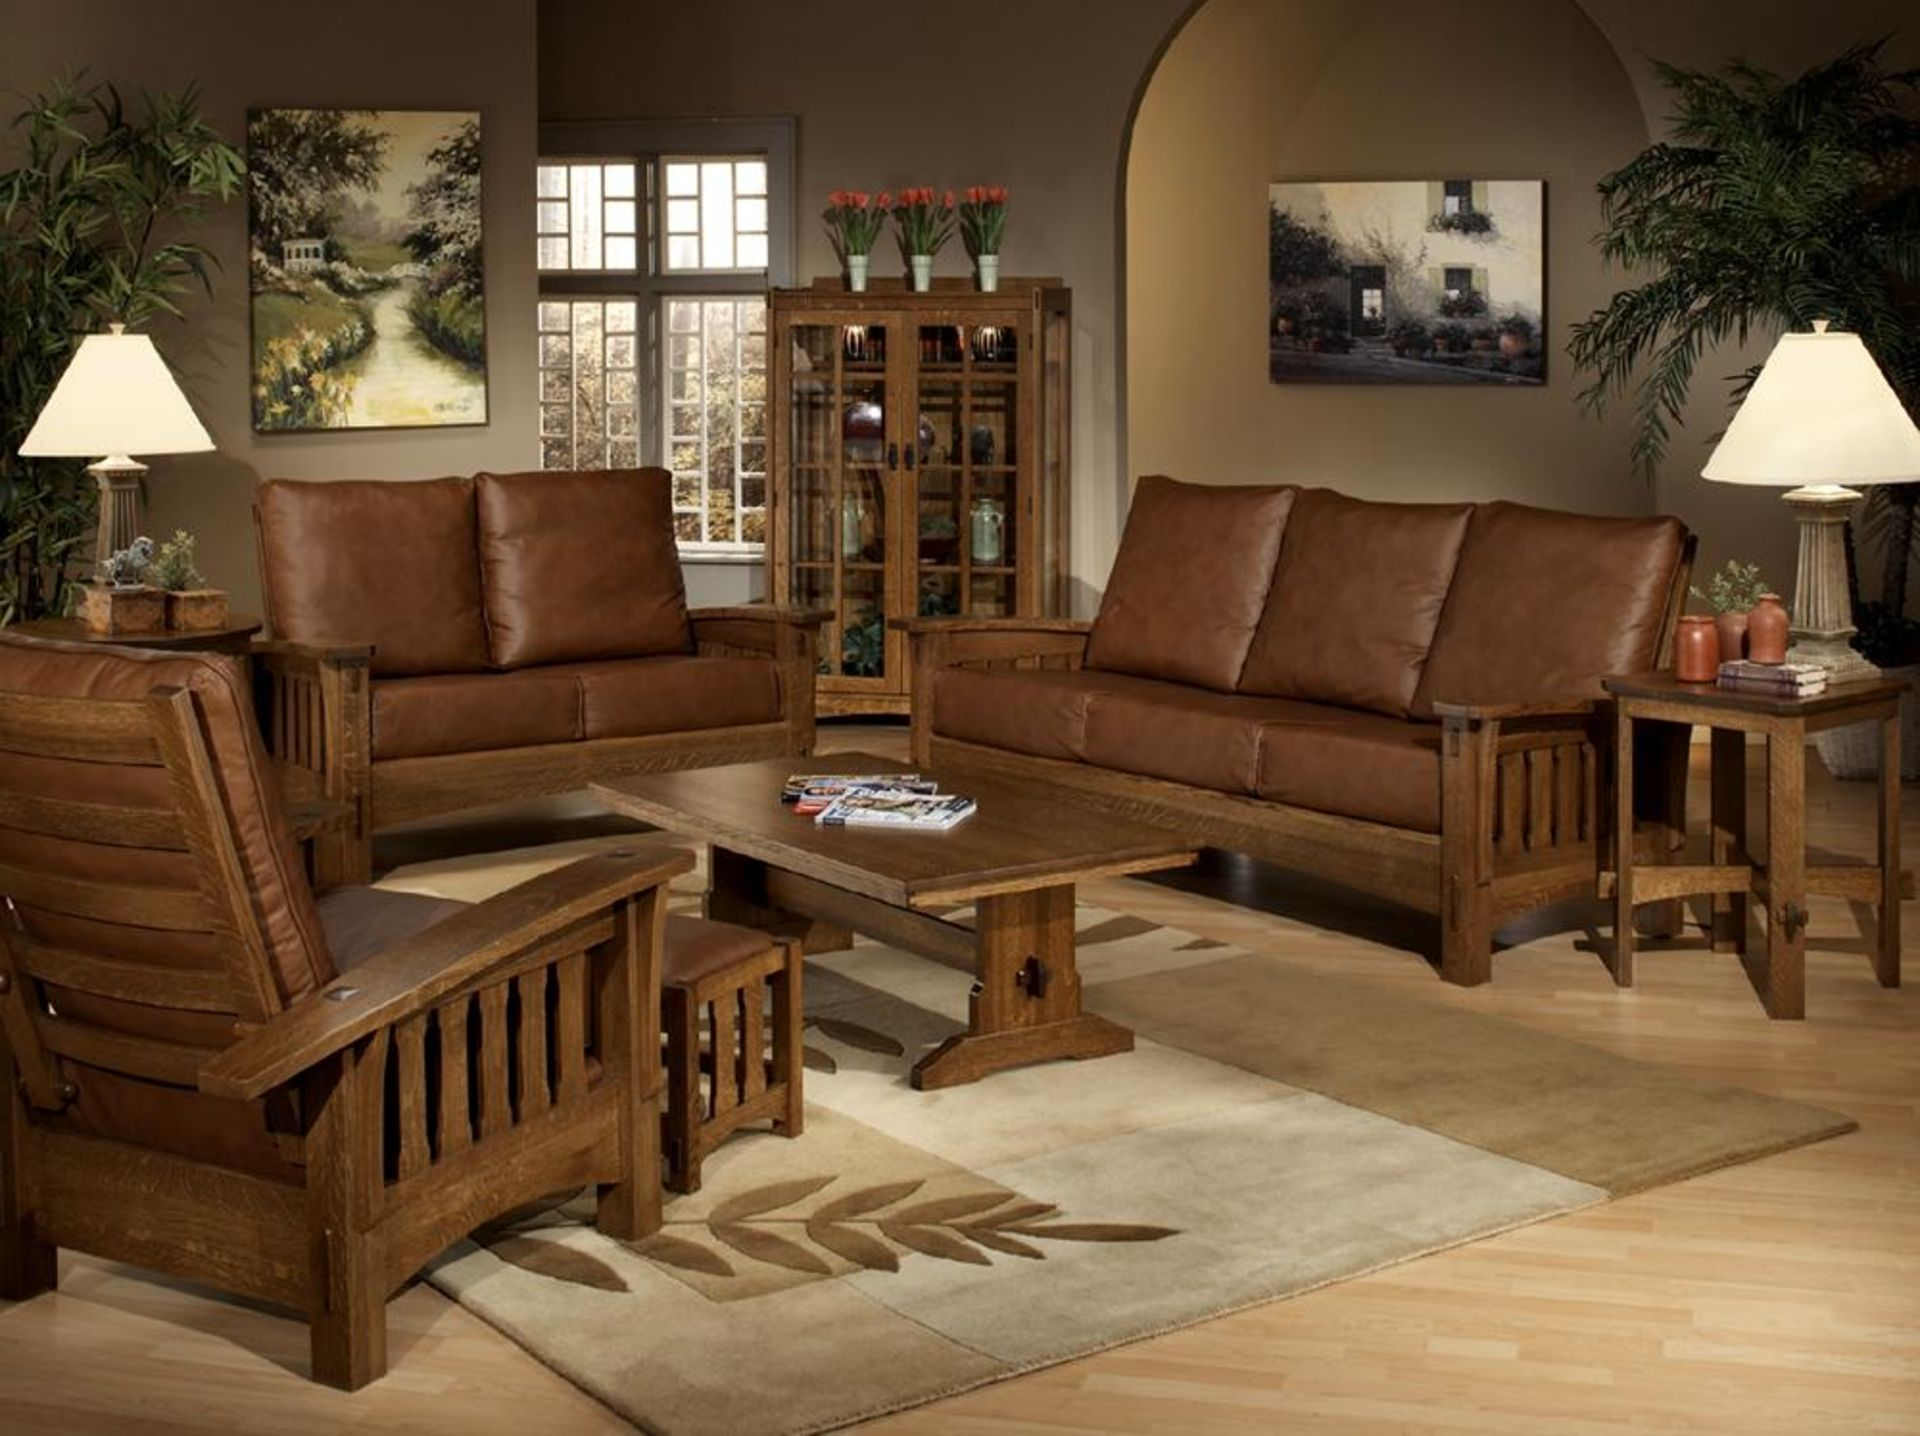 Lovely Furniture. Dark Brown Leather Sofa Set With Brown Wooden Arms And .